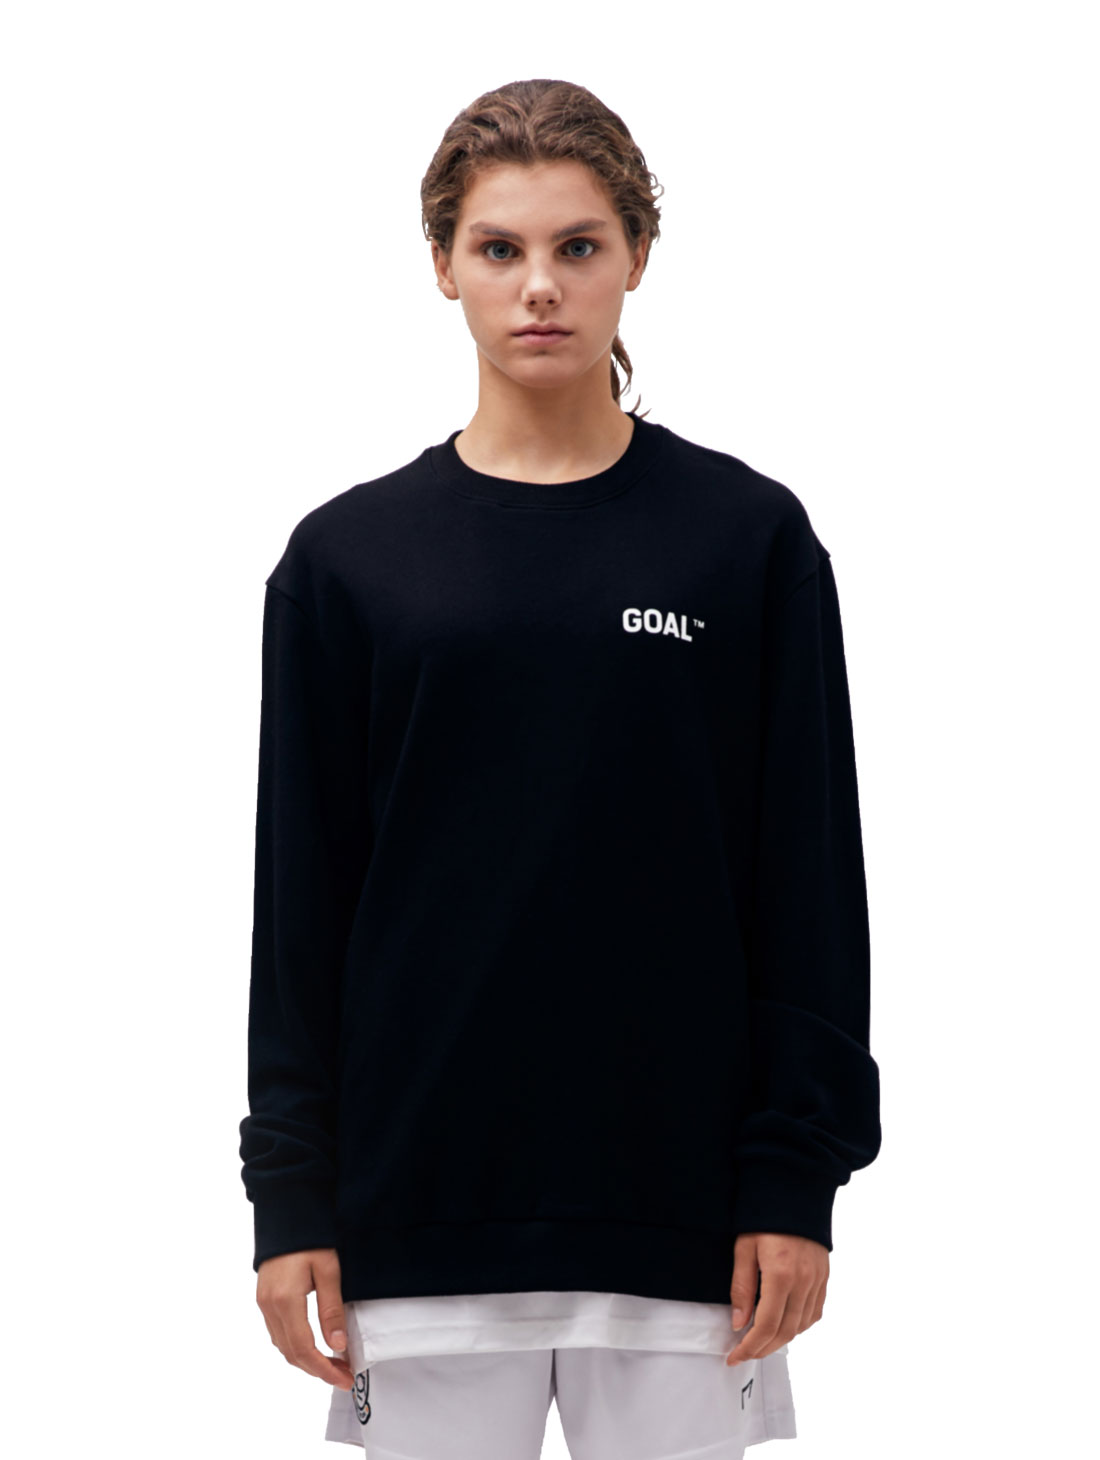 GOALSTUDIO (XS)BACK LOGO SWEATSHIRT - BLACK